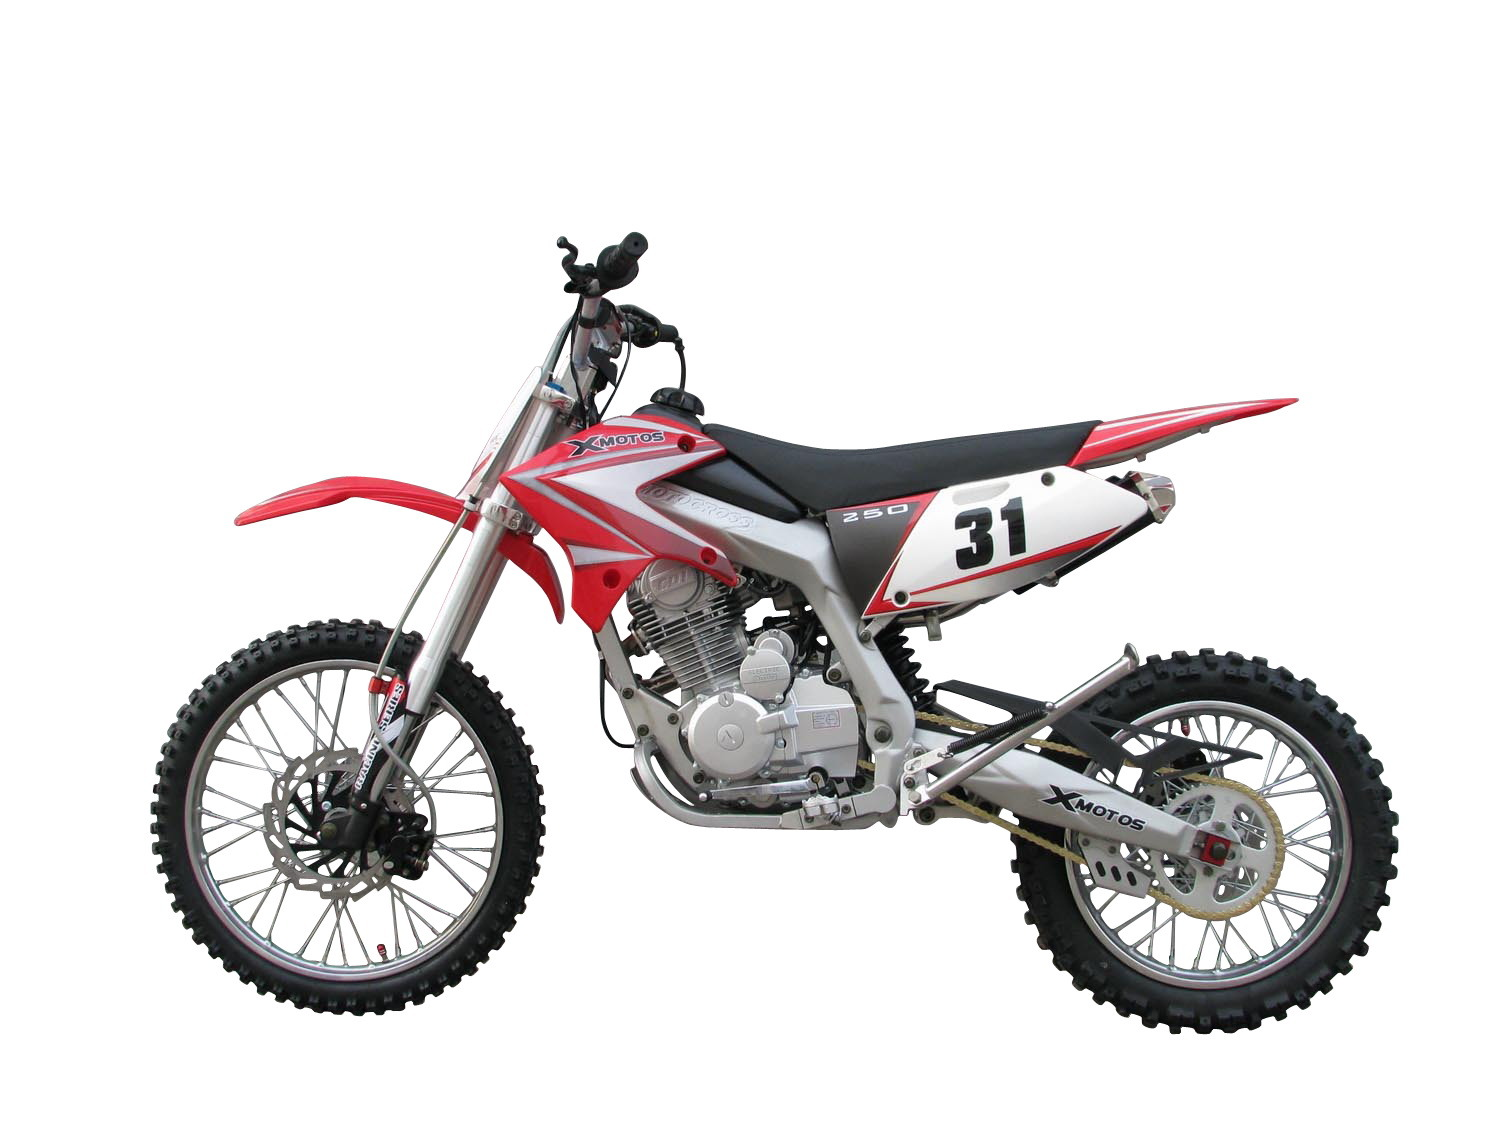 china dirt bike xzt250 xb 31 250cc red china dirt bike 200cc dirt bike. Black Bedroom Furniture Sets. Home Design Ideas